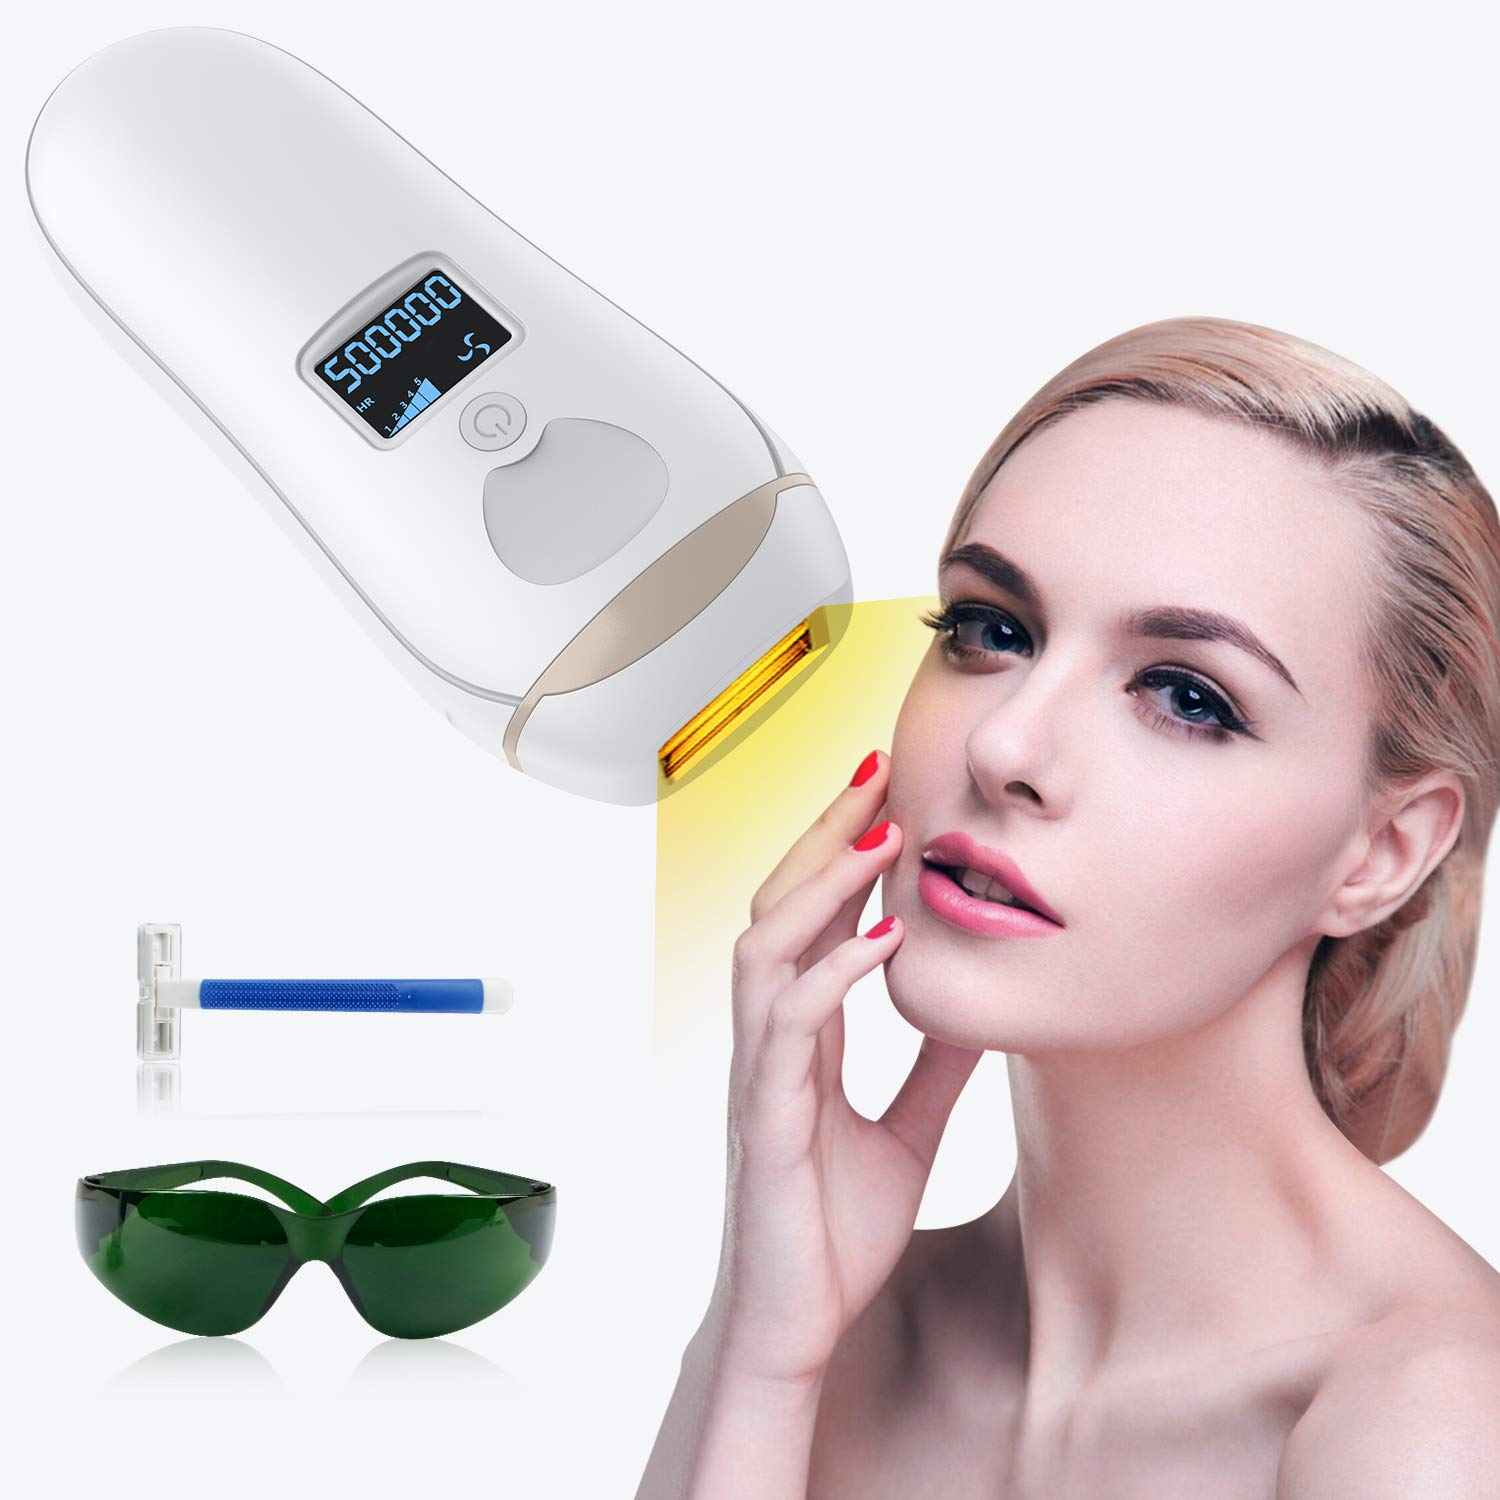 Hair Removal, Hair Removal For Women, Permanent Hair Removal, Laser Hair Removal IPL 500,000 Flashes Hair Removal For Face and Body With 5 Different Level Adjustment and Manual/Auto Settings